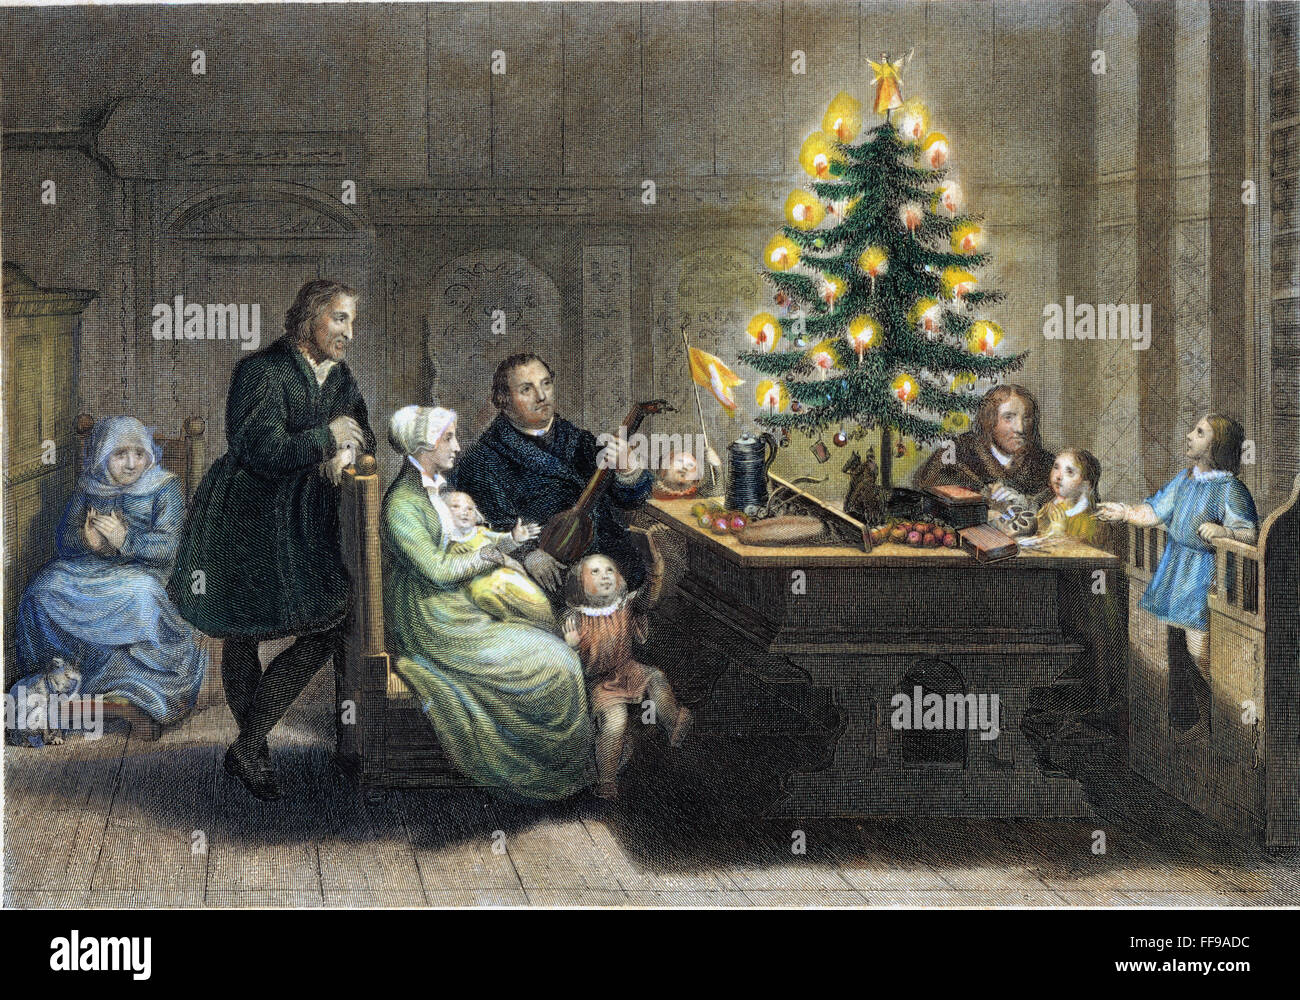 MARTIN LUTHER (1483-1546)./nWith his wife, Katharina von Bora, and ...